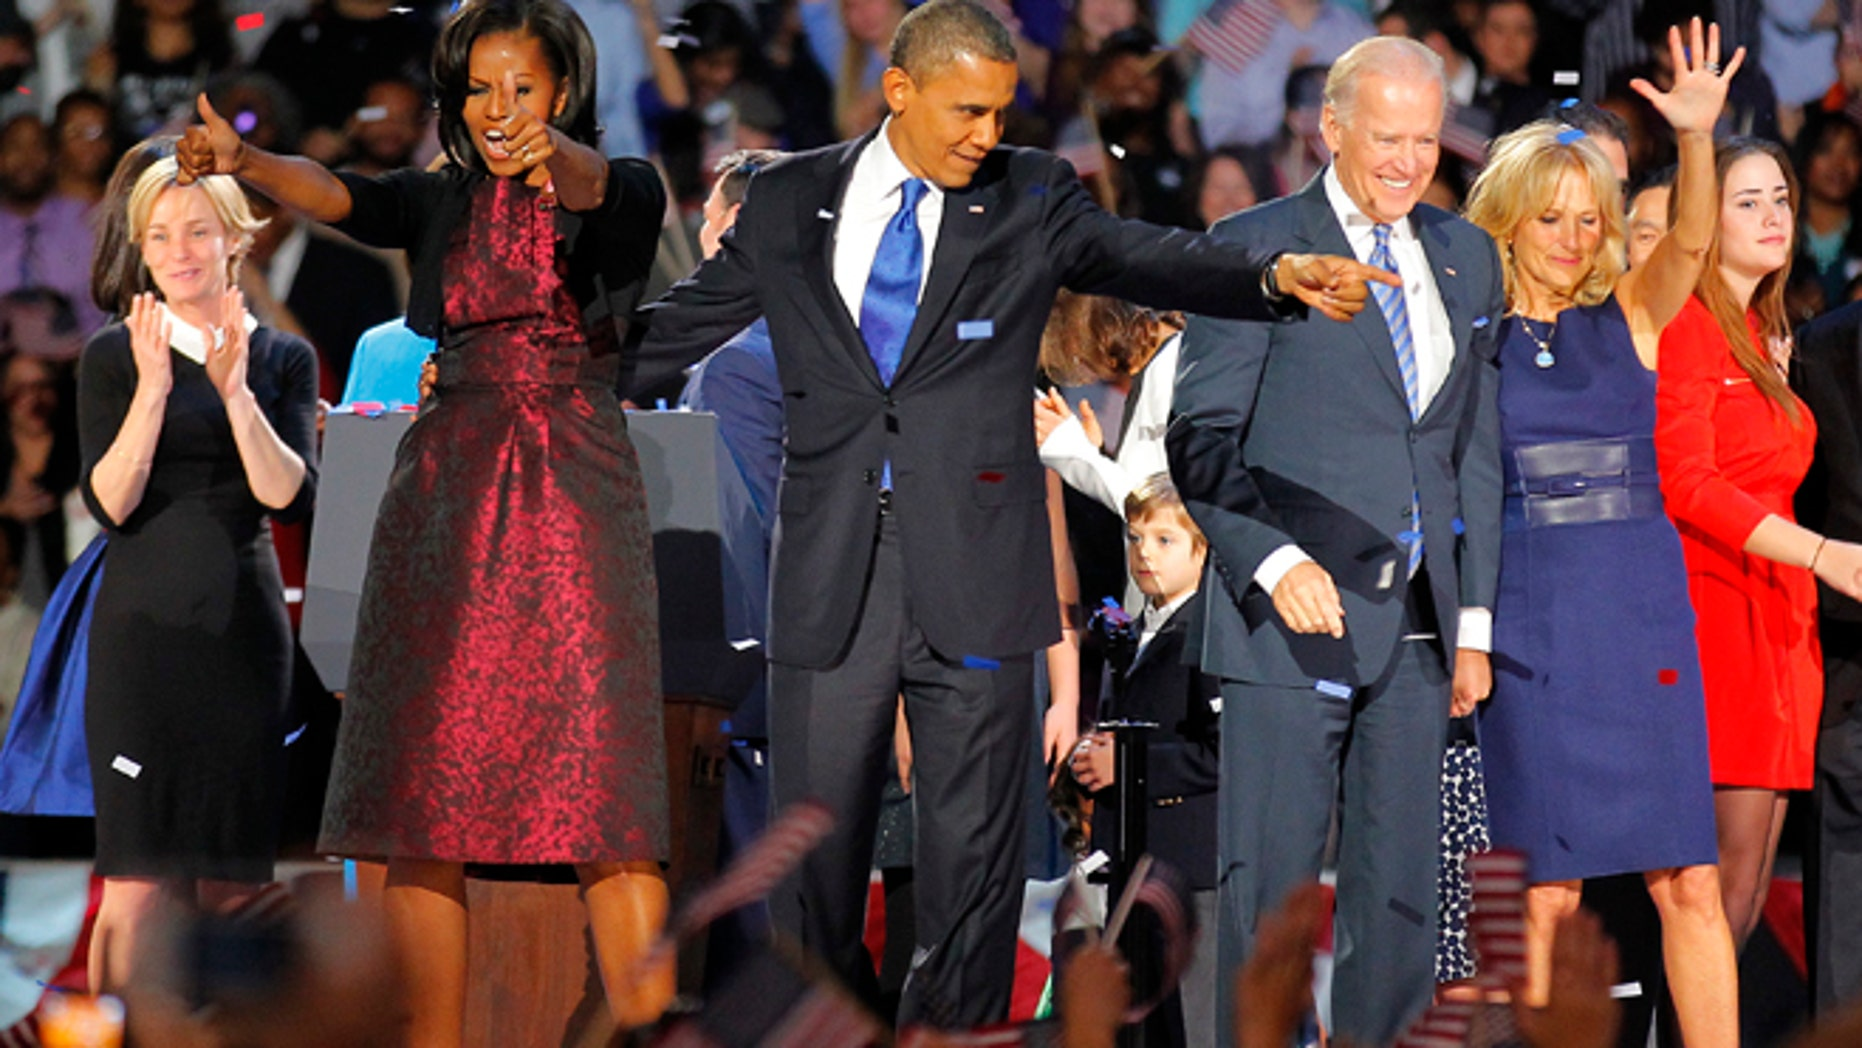 Nov. 7 2012: President Barack Obama , joined by  his wife Michelle, Vice President Joe Biden and his spouse  Jill acknowledge applause  after Obama delivered his victory speech to supporters gathered in Chicago.